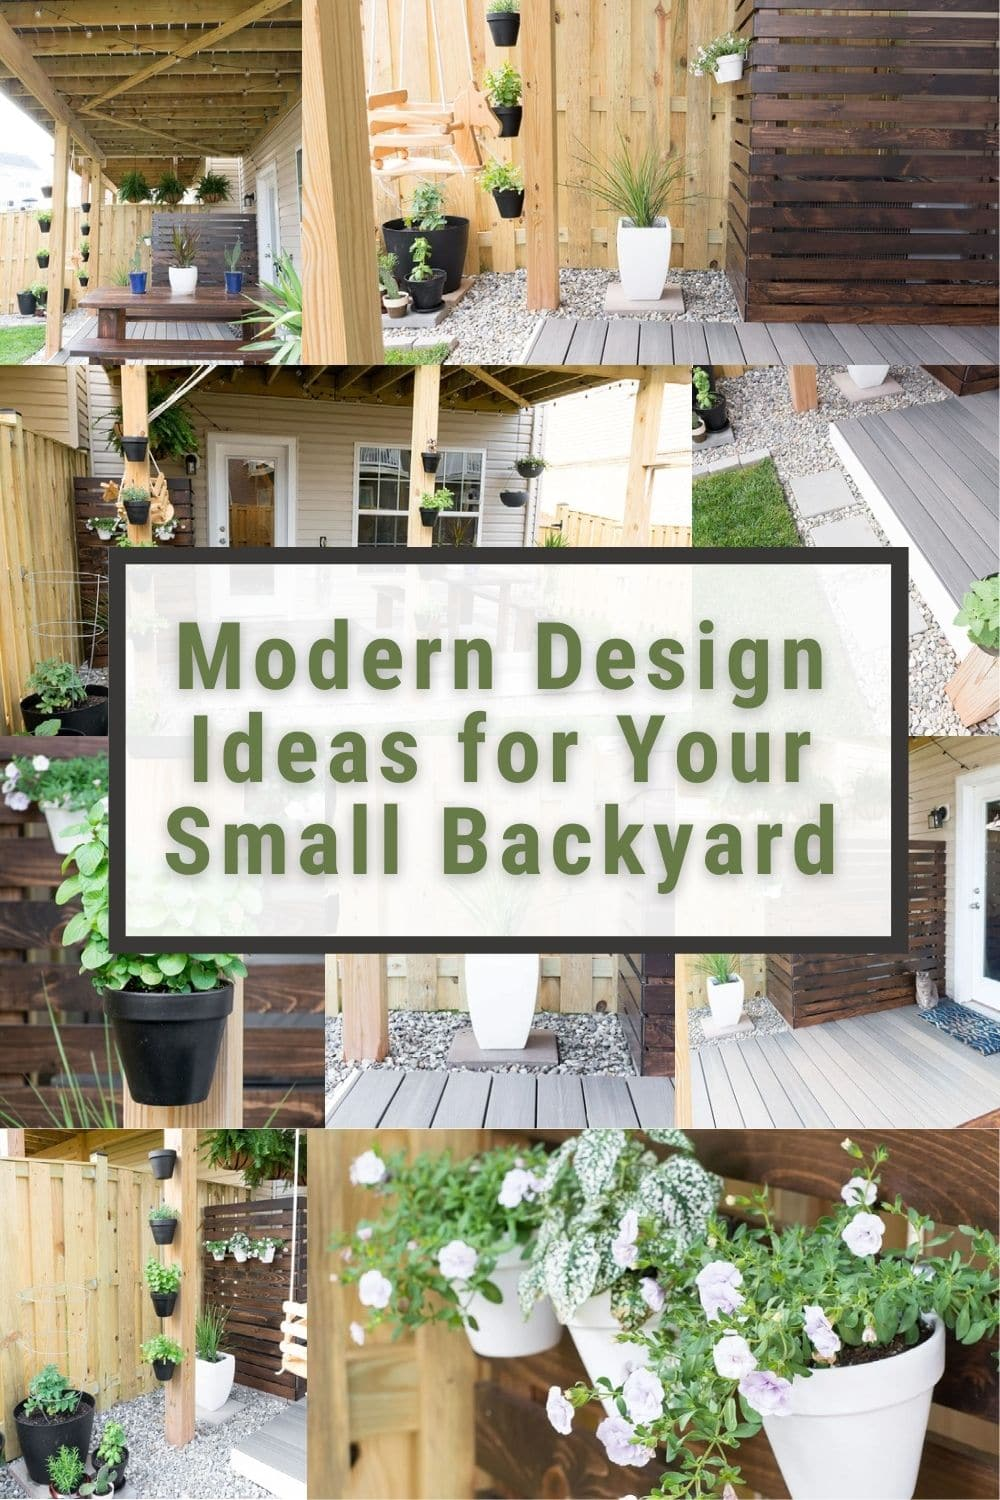 image collage of small backyard design ideas with text Modern Design Ideas for Your Small Backyard